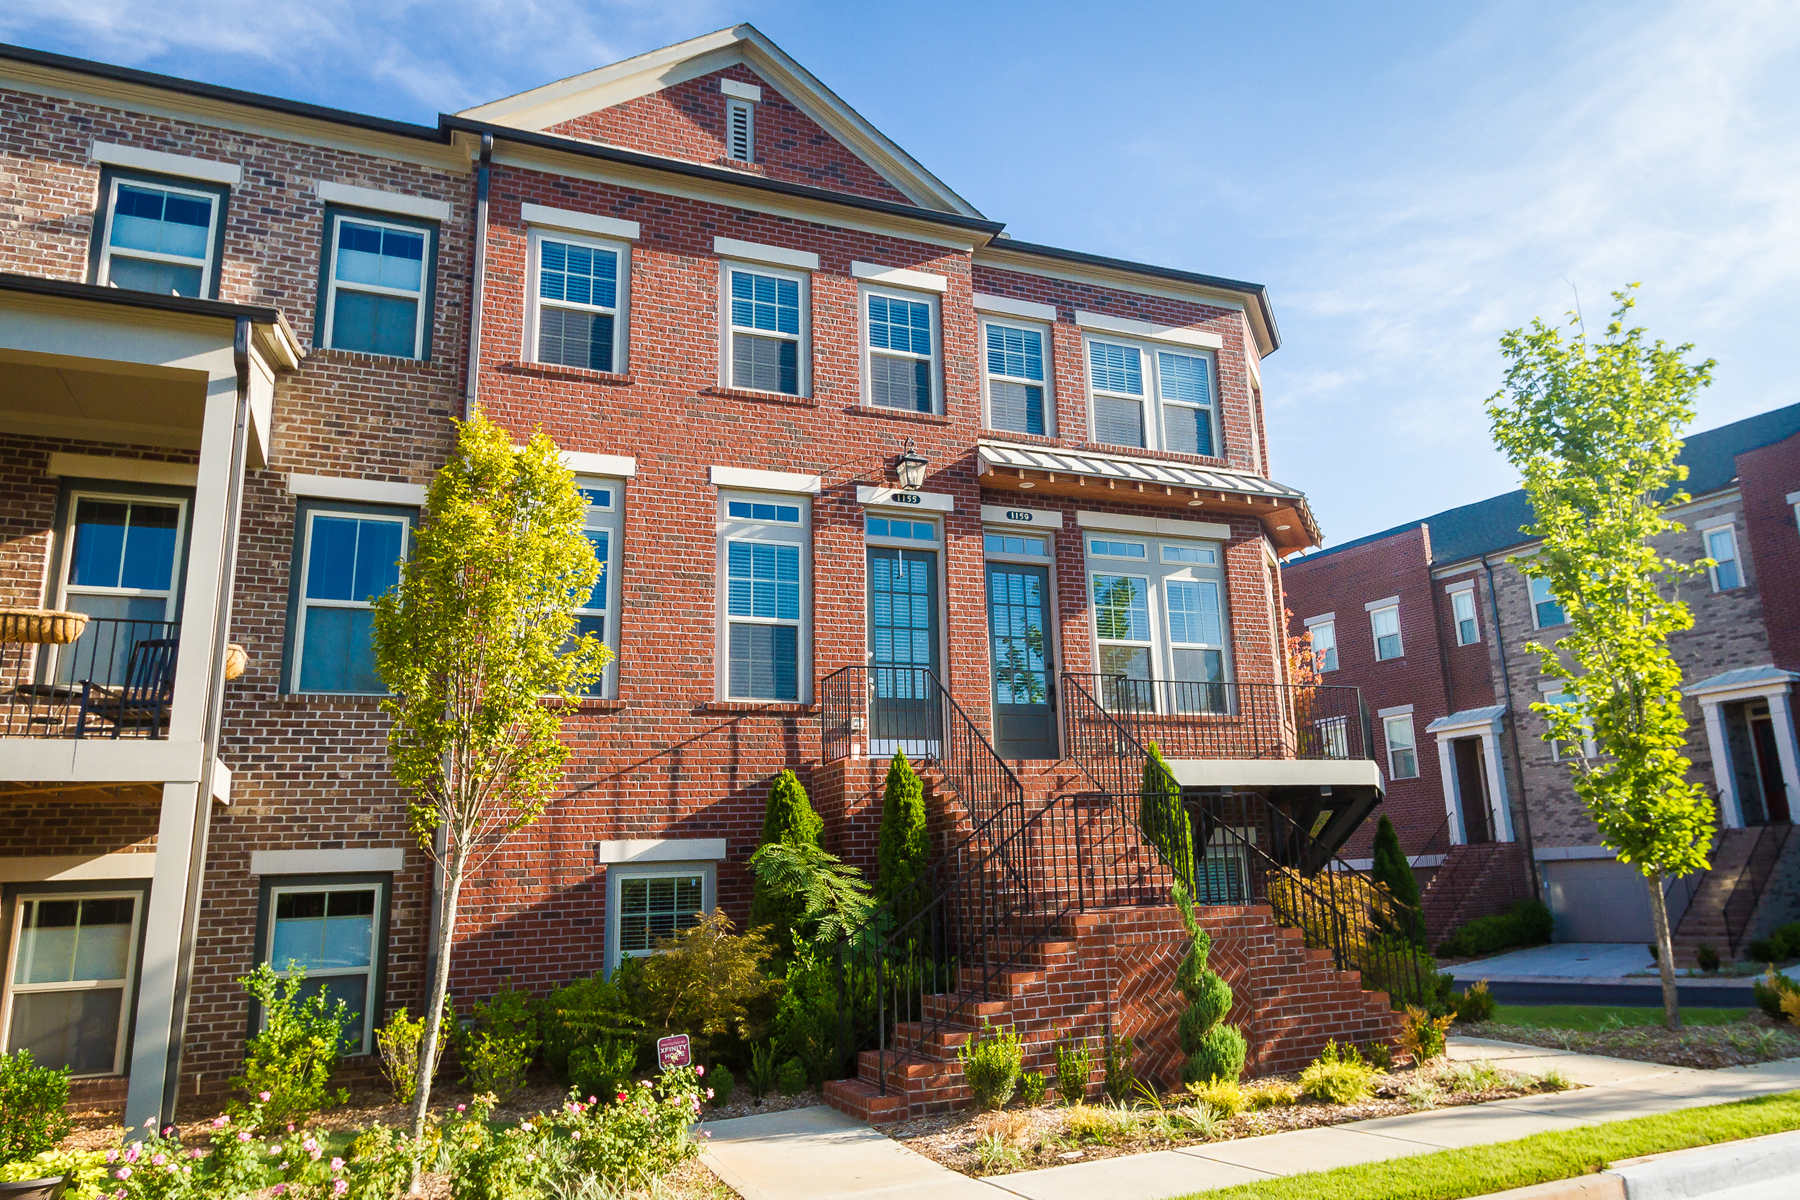 Townhouse for Sale at Gorgeous Townhome In Sought After Location 1155 Holly Avenue Dunwoody, Georgia, 30338 United States